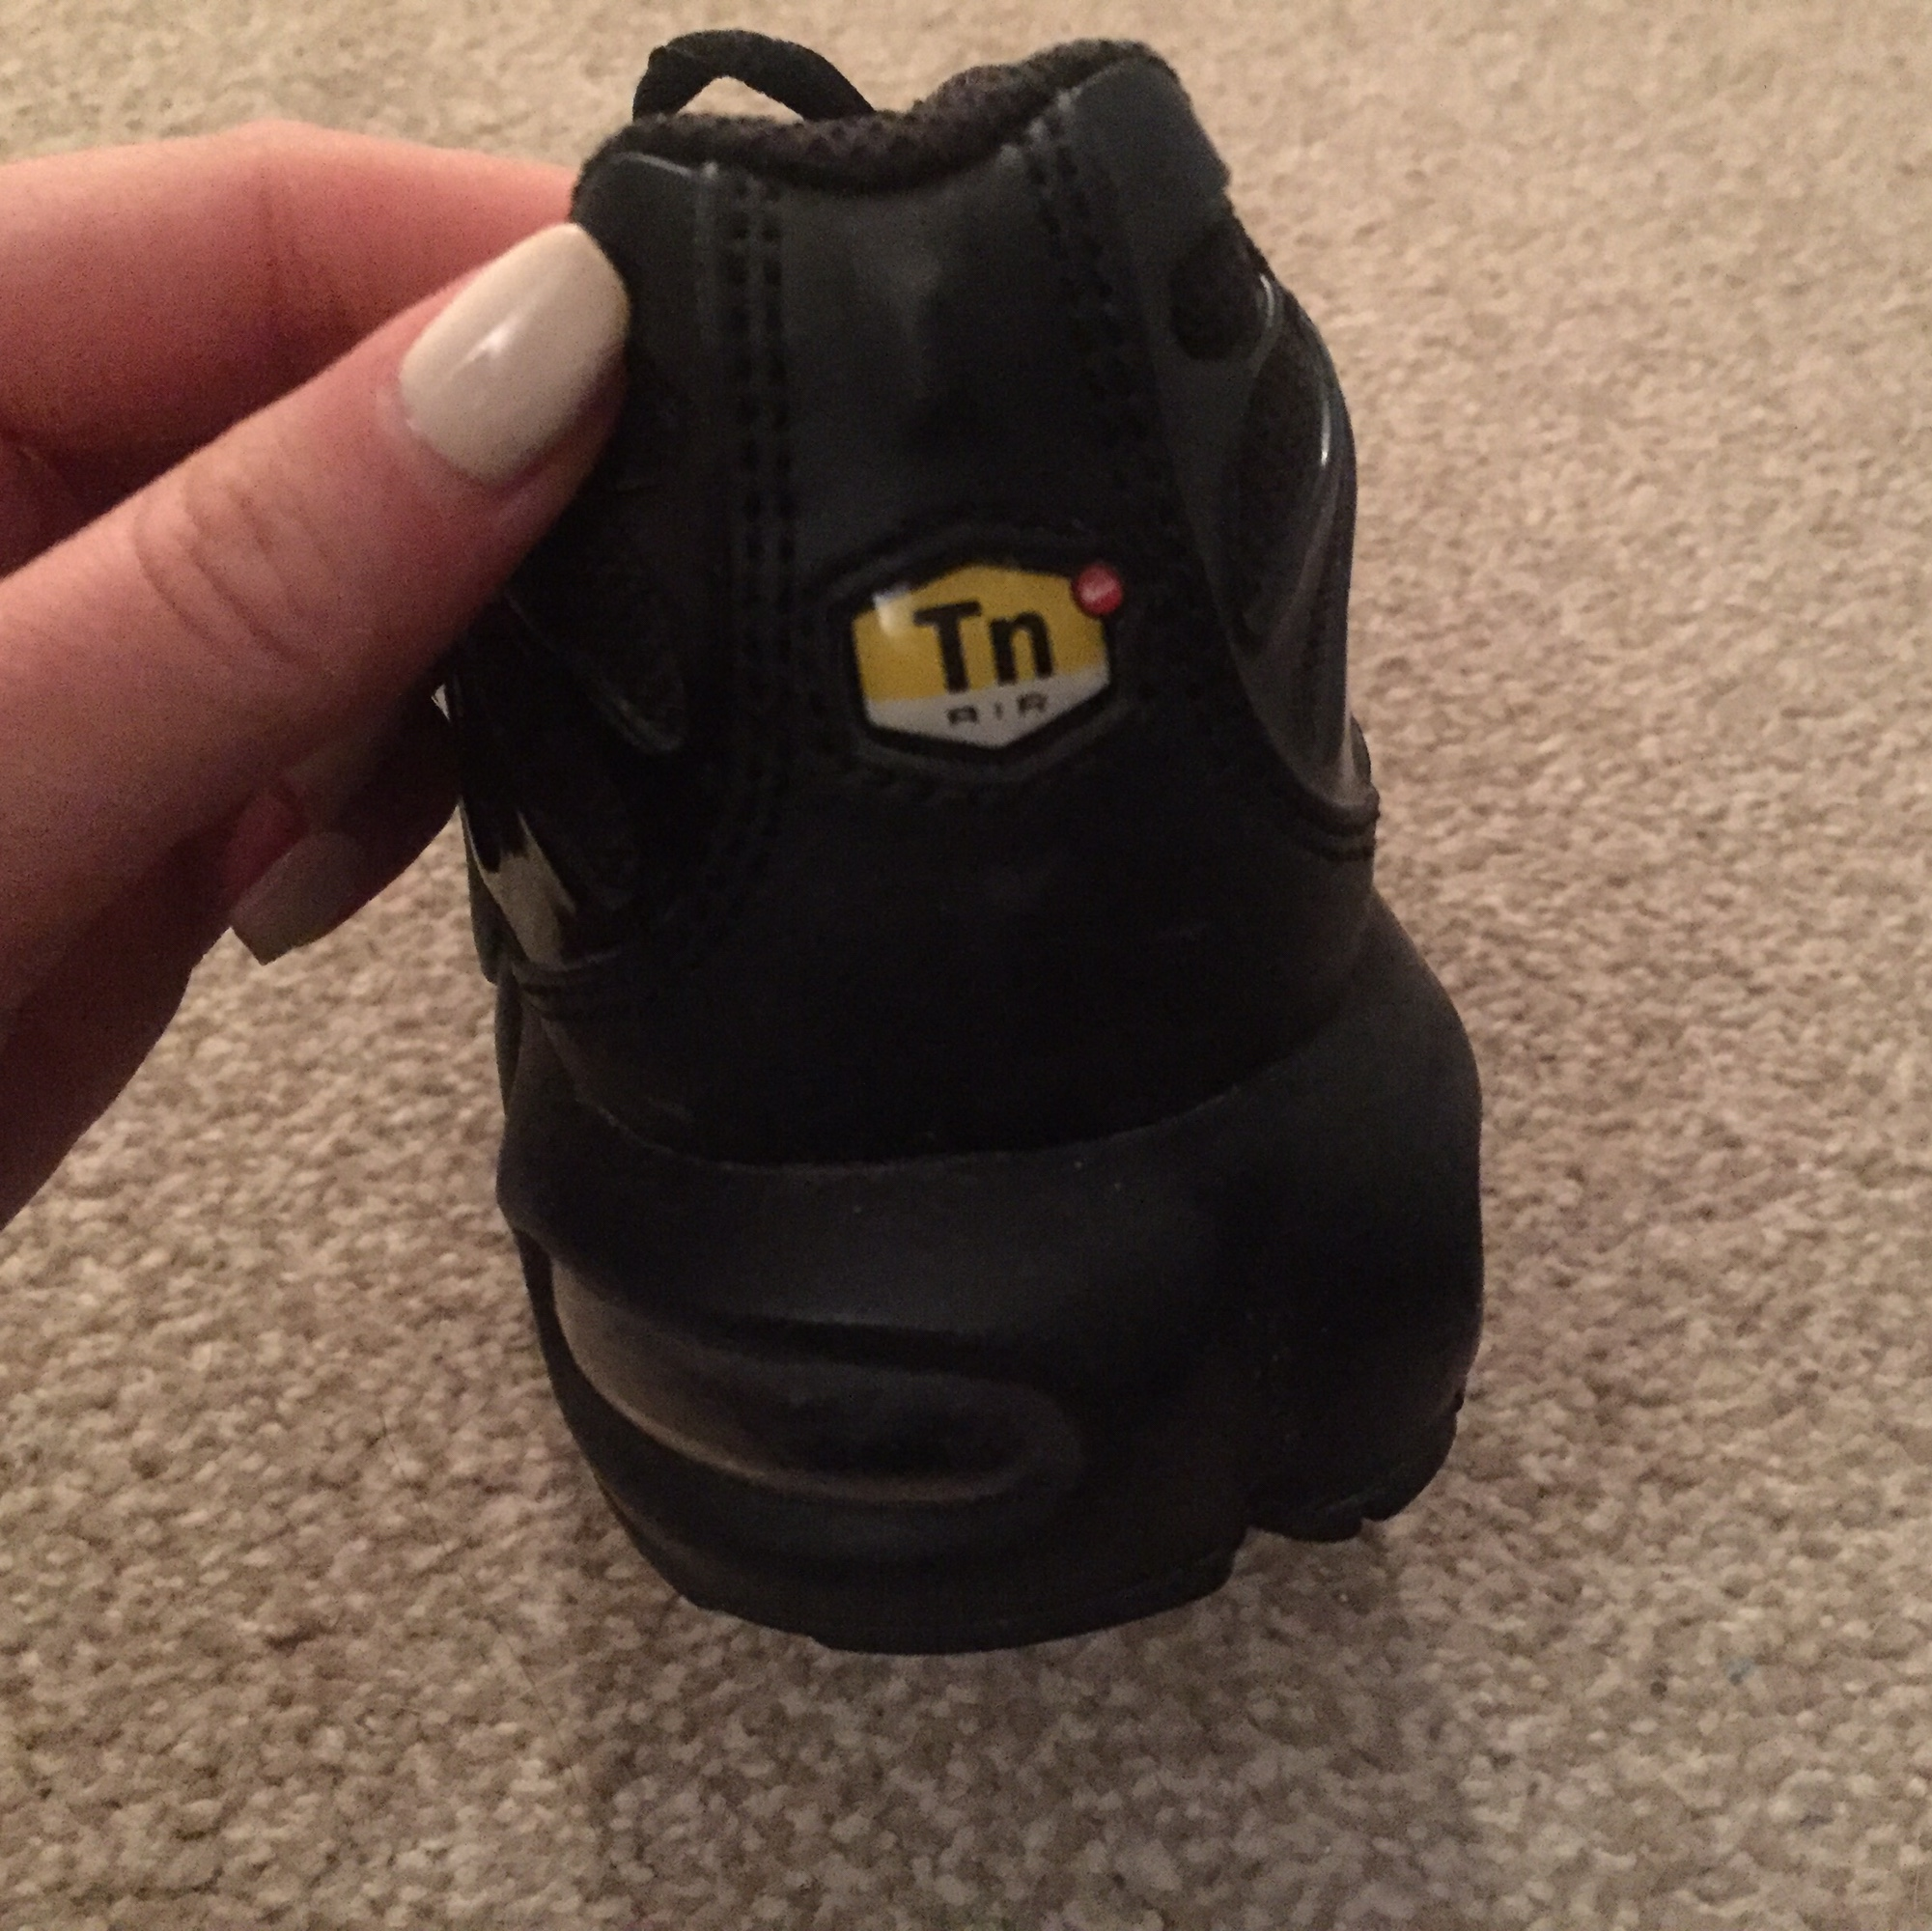 TN trainers in perfect condition worn